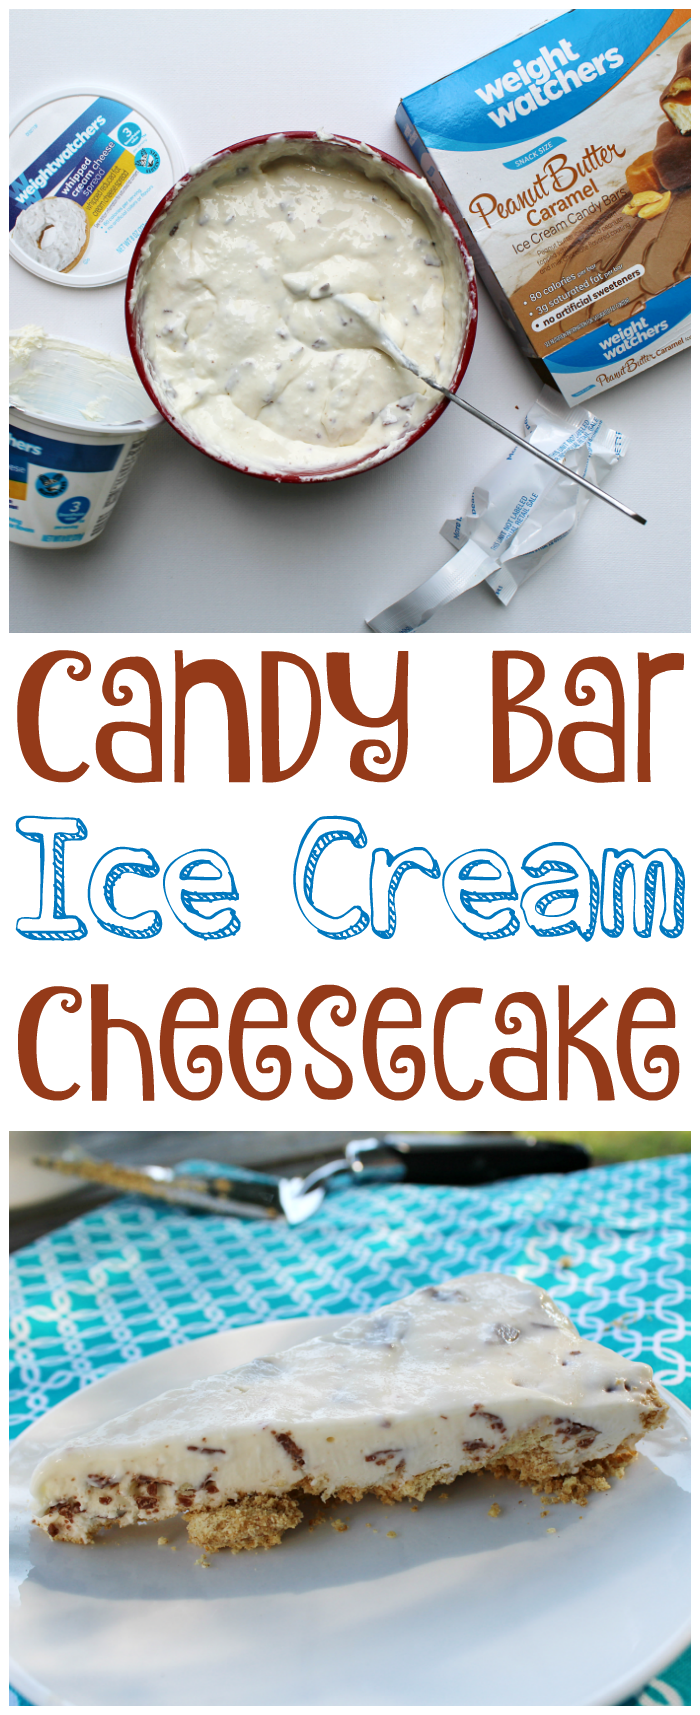 Candy Bar Ice Cream Cheesecake